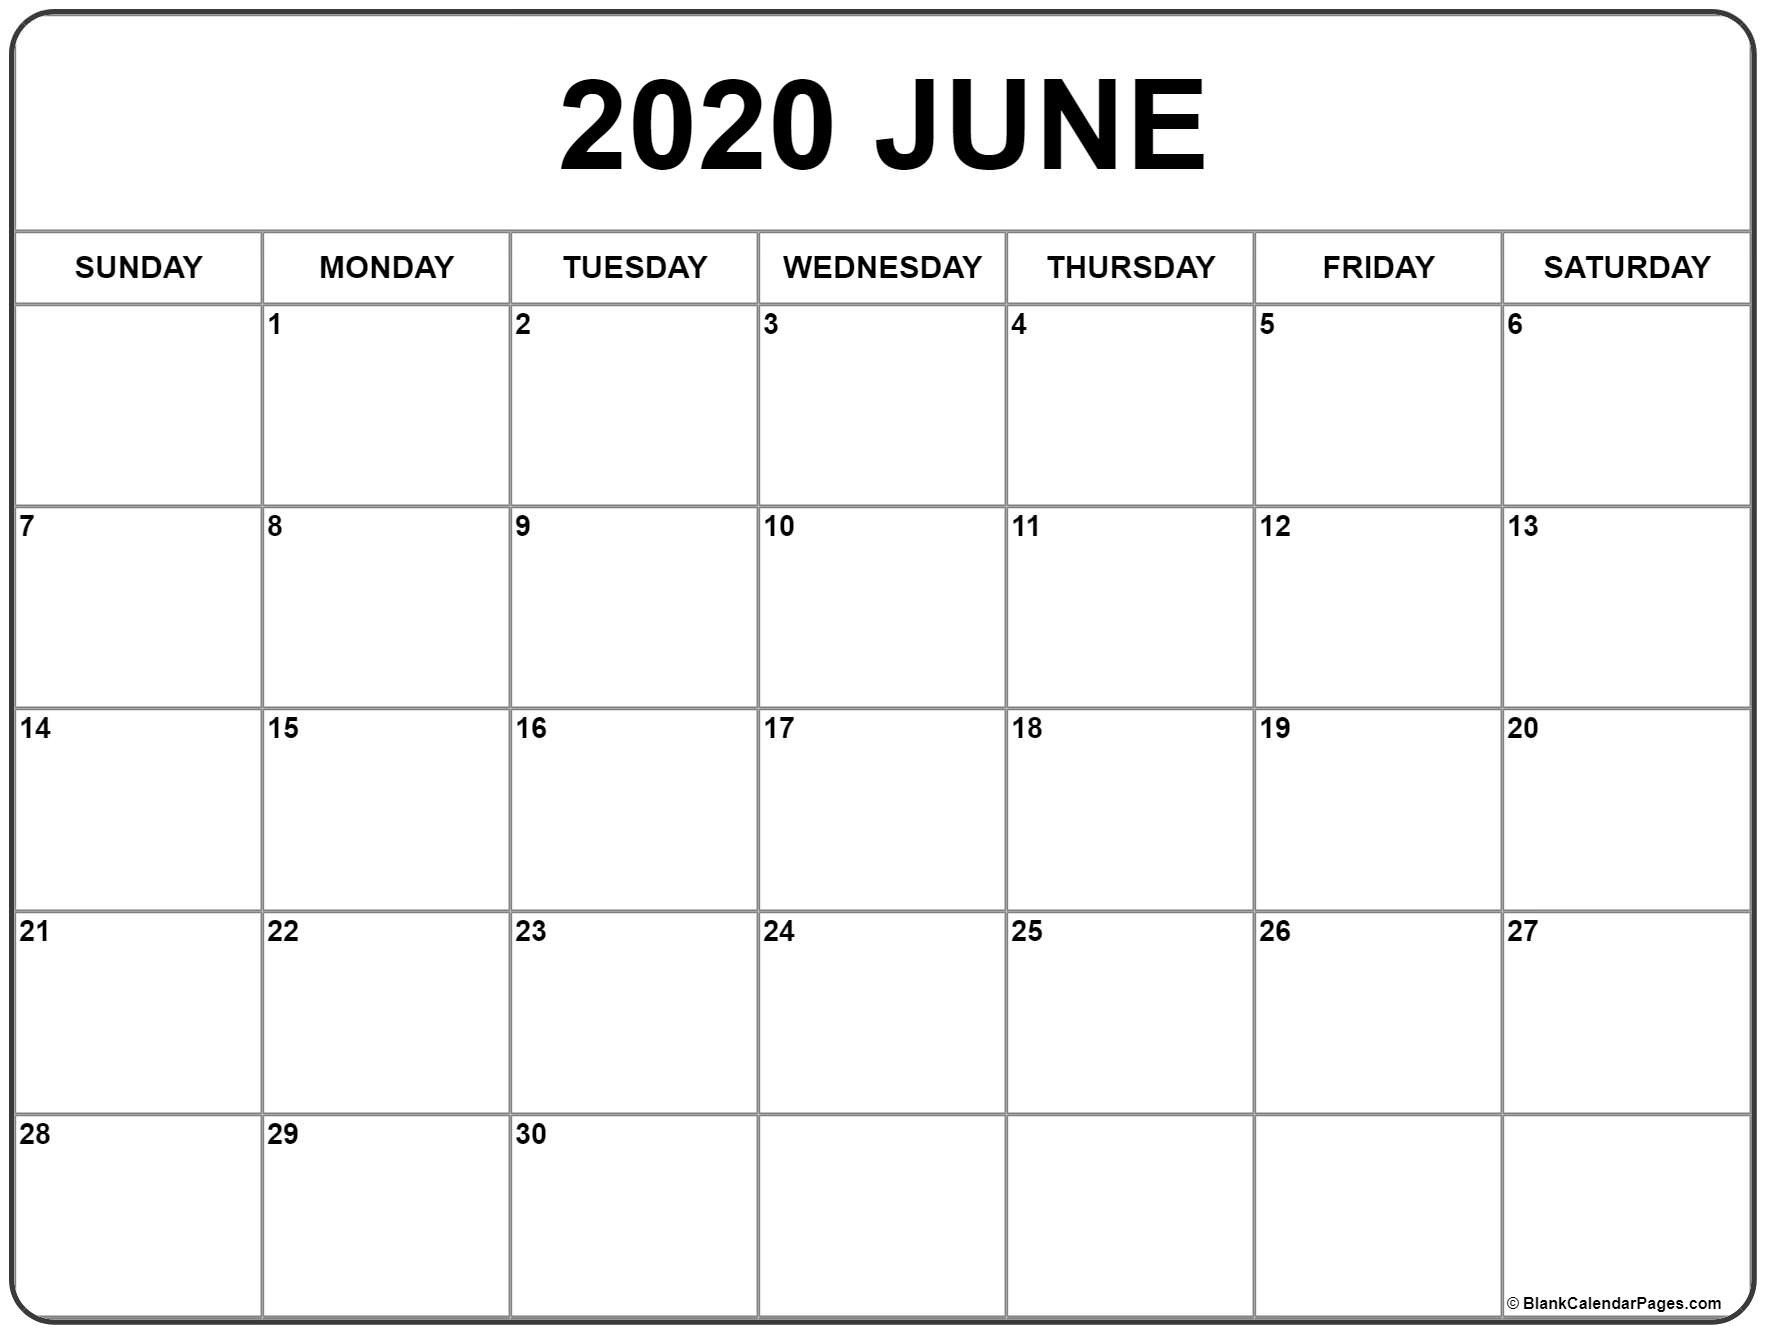 June 2020 Calendar | Free Printable Monthly Calendars-Calendar Template June 2020 To August 2020